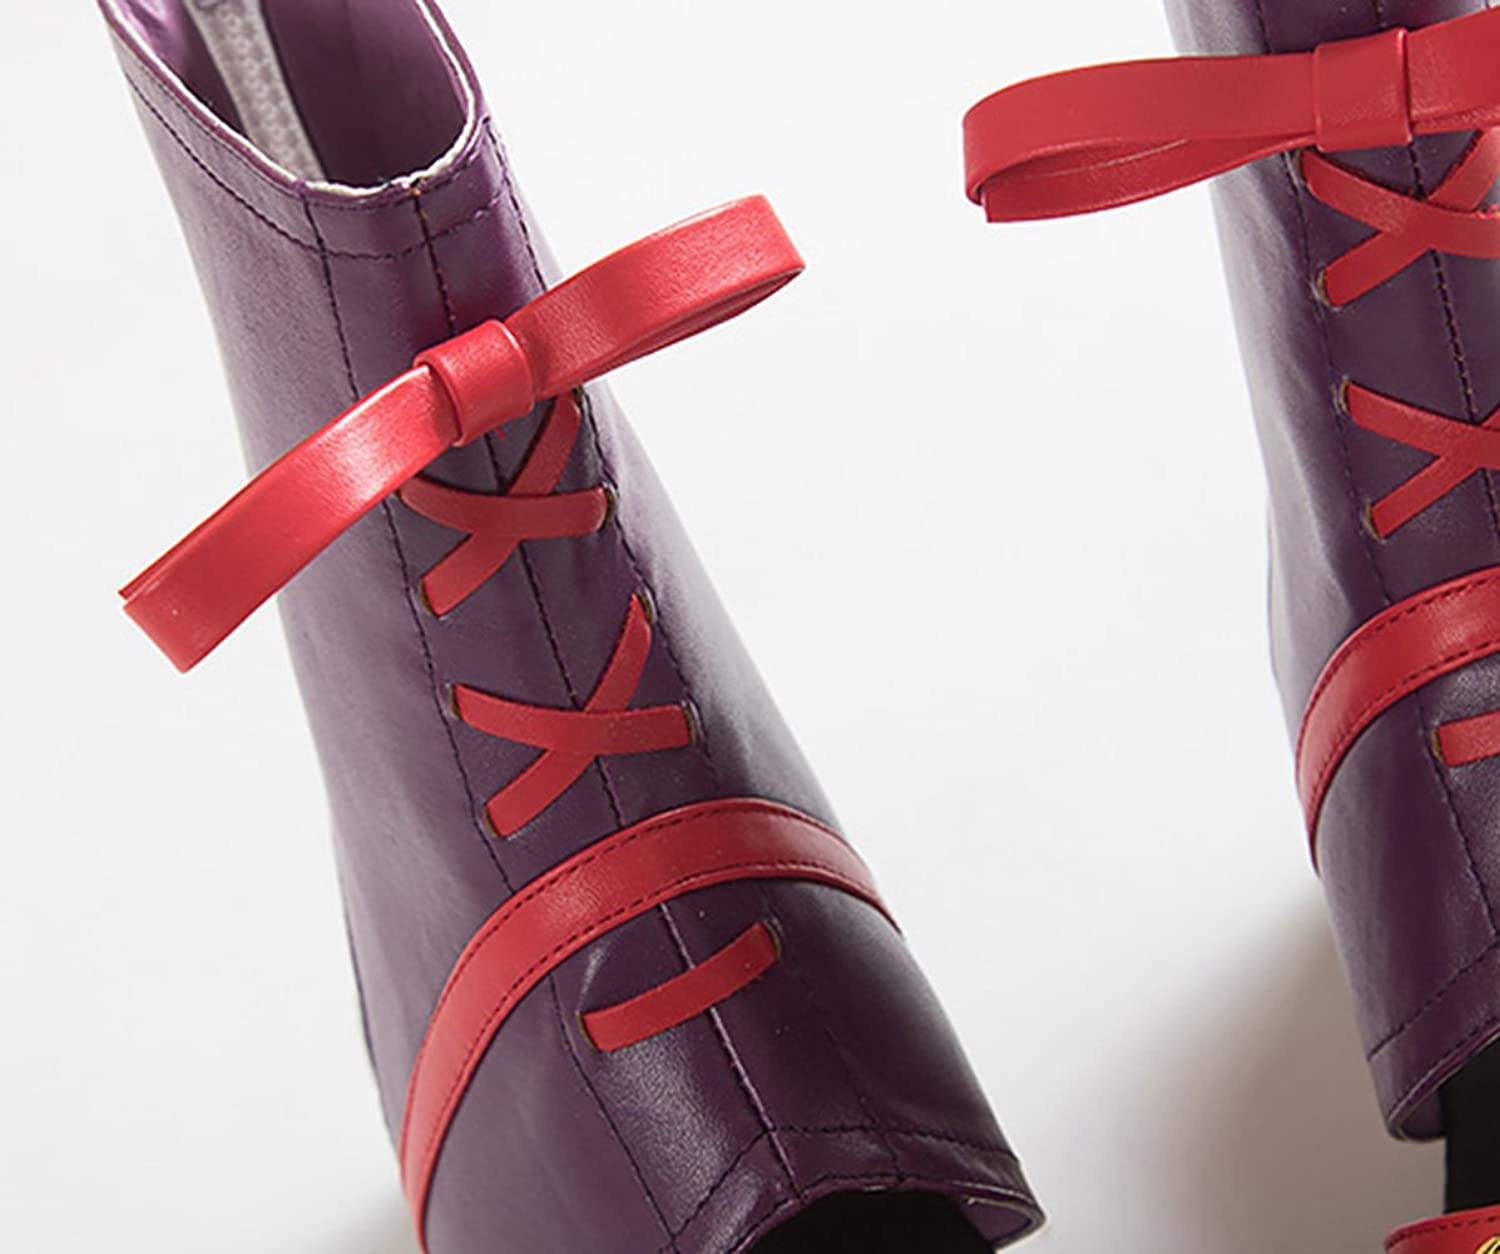 Brdwn Women's Cosplay Kagura Flatform Shoes Short Boots Shoes